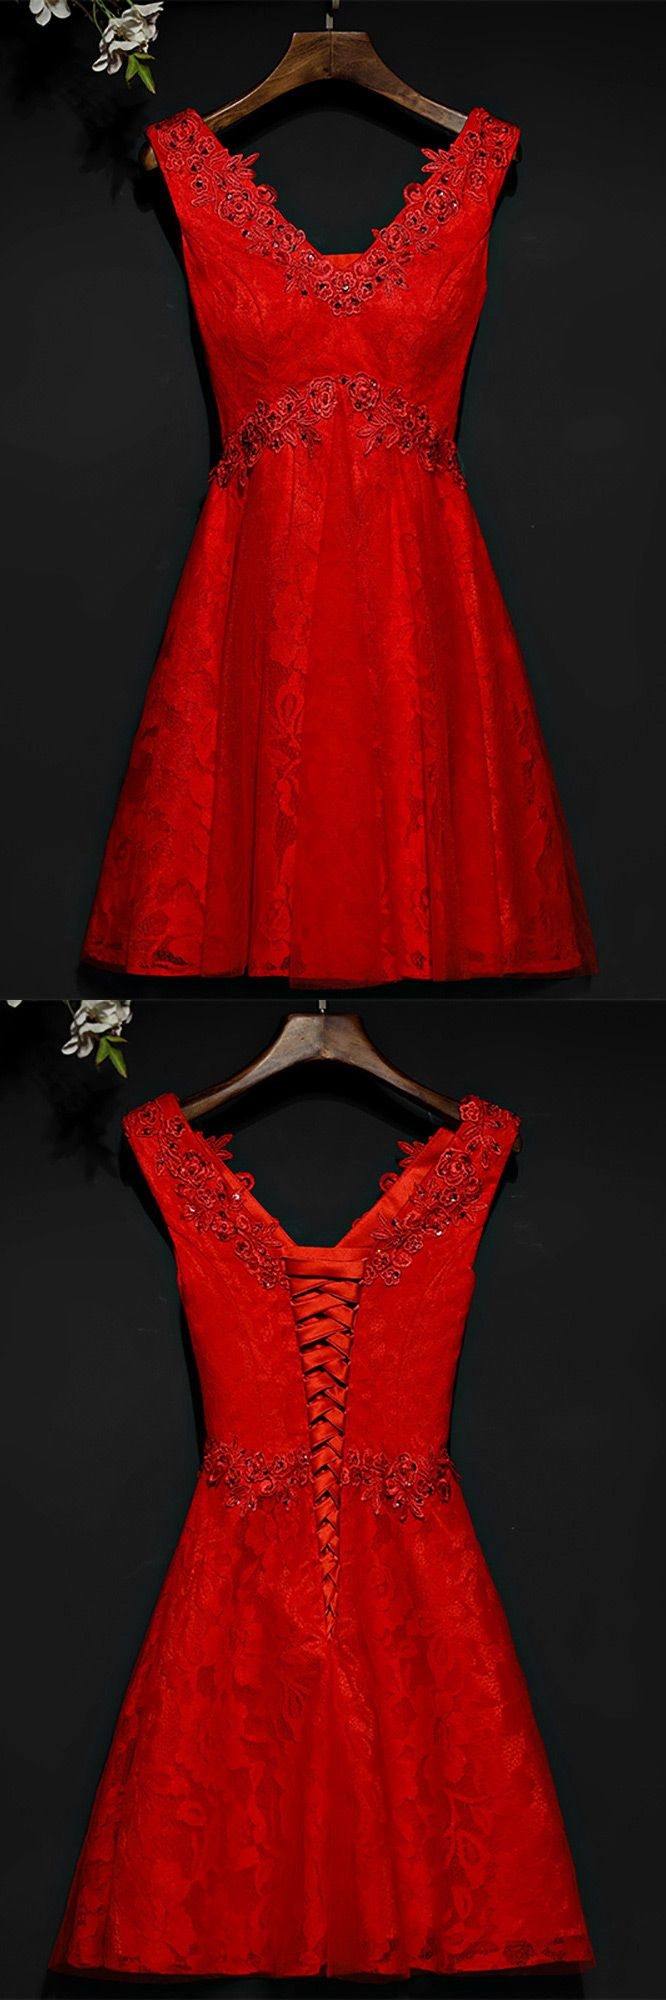 Only $89, Short Red Beaded Lace High Waist Bridal Party Dress V-neck #MYX18161 at #SheProm. SheProm is an online store with thousands of dresses, range from Party,Red,A Line Dresses,Lace Dresses,Short Dresses and so on. Not only selling formal dresses, more and more trendy dress styles will be updated daily to our store. With low price and high quality guaranteed, you will definitely like shopping from us. Click to shop now!